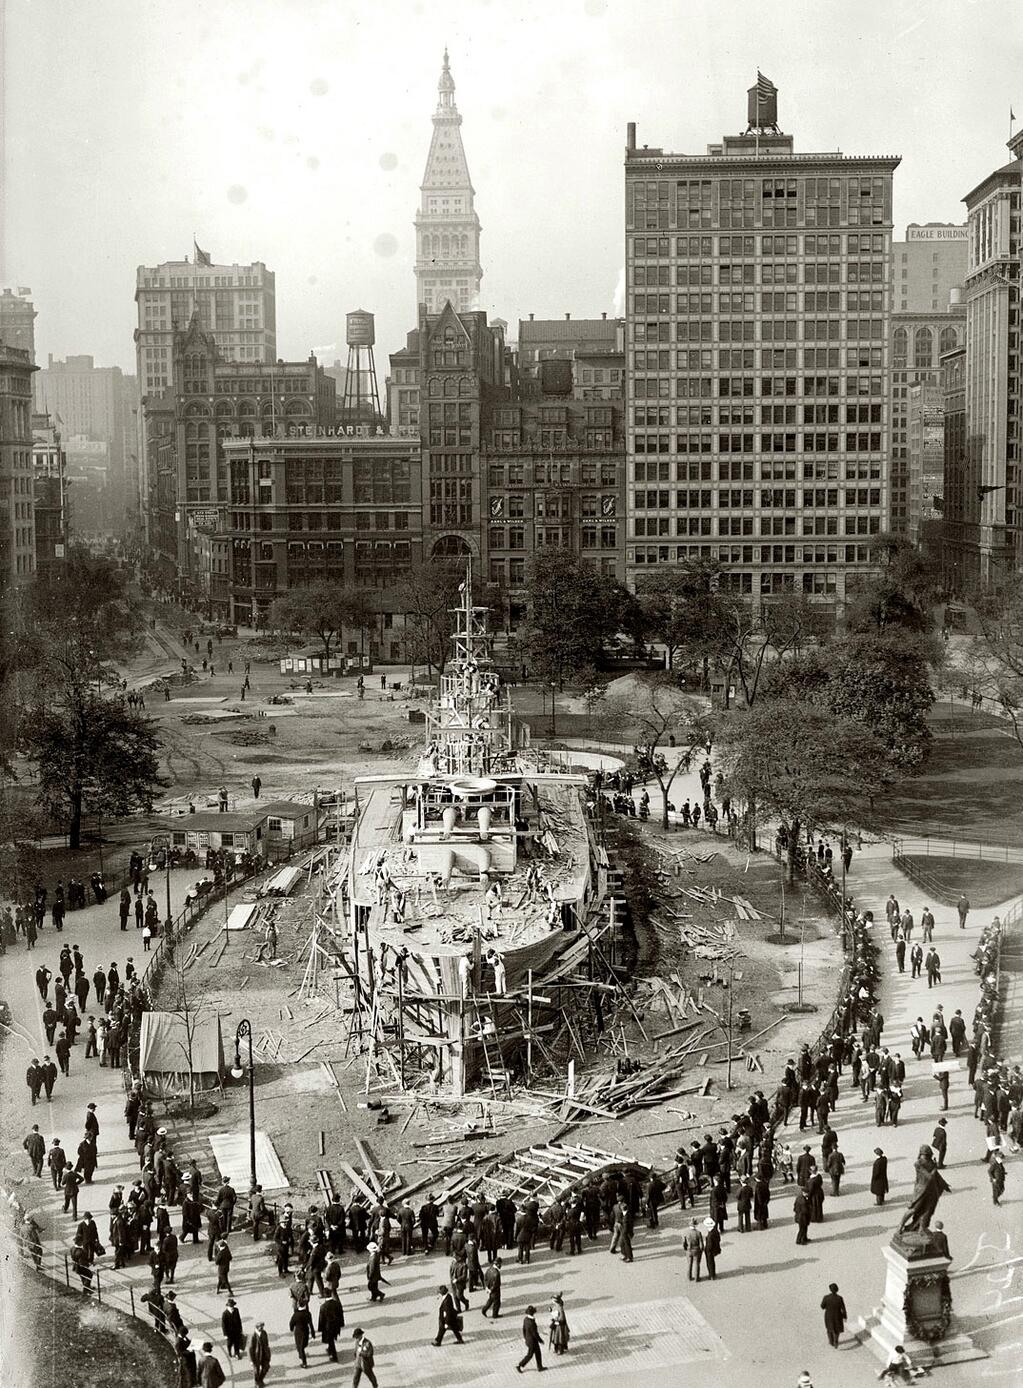 Here's a Navy battleship World War I recruiting station being built on Union Square NYC, 1917